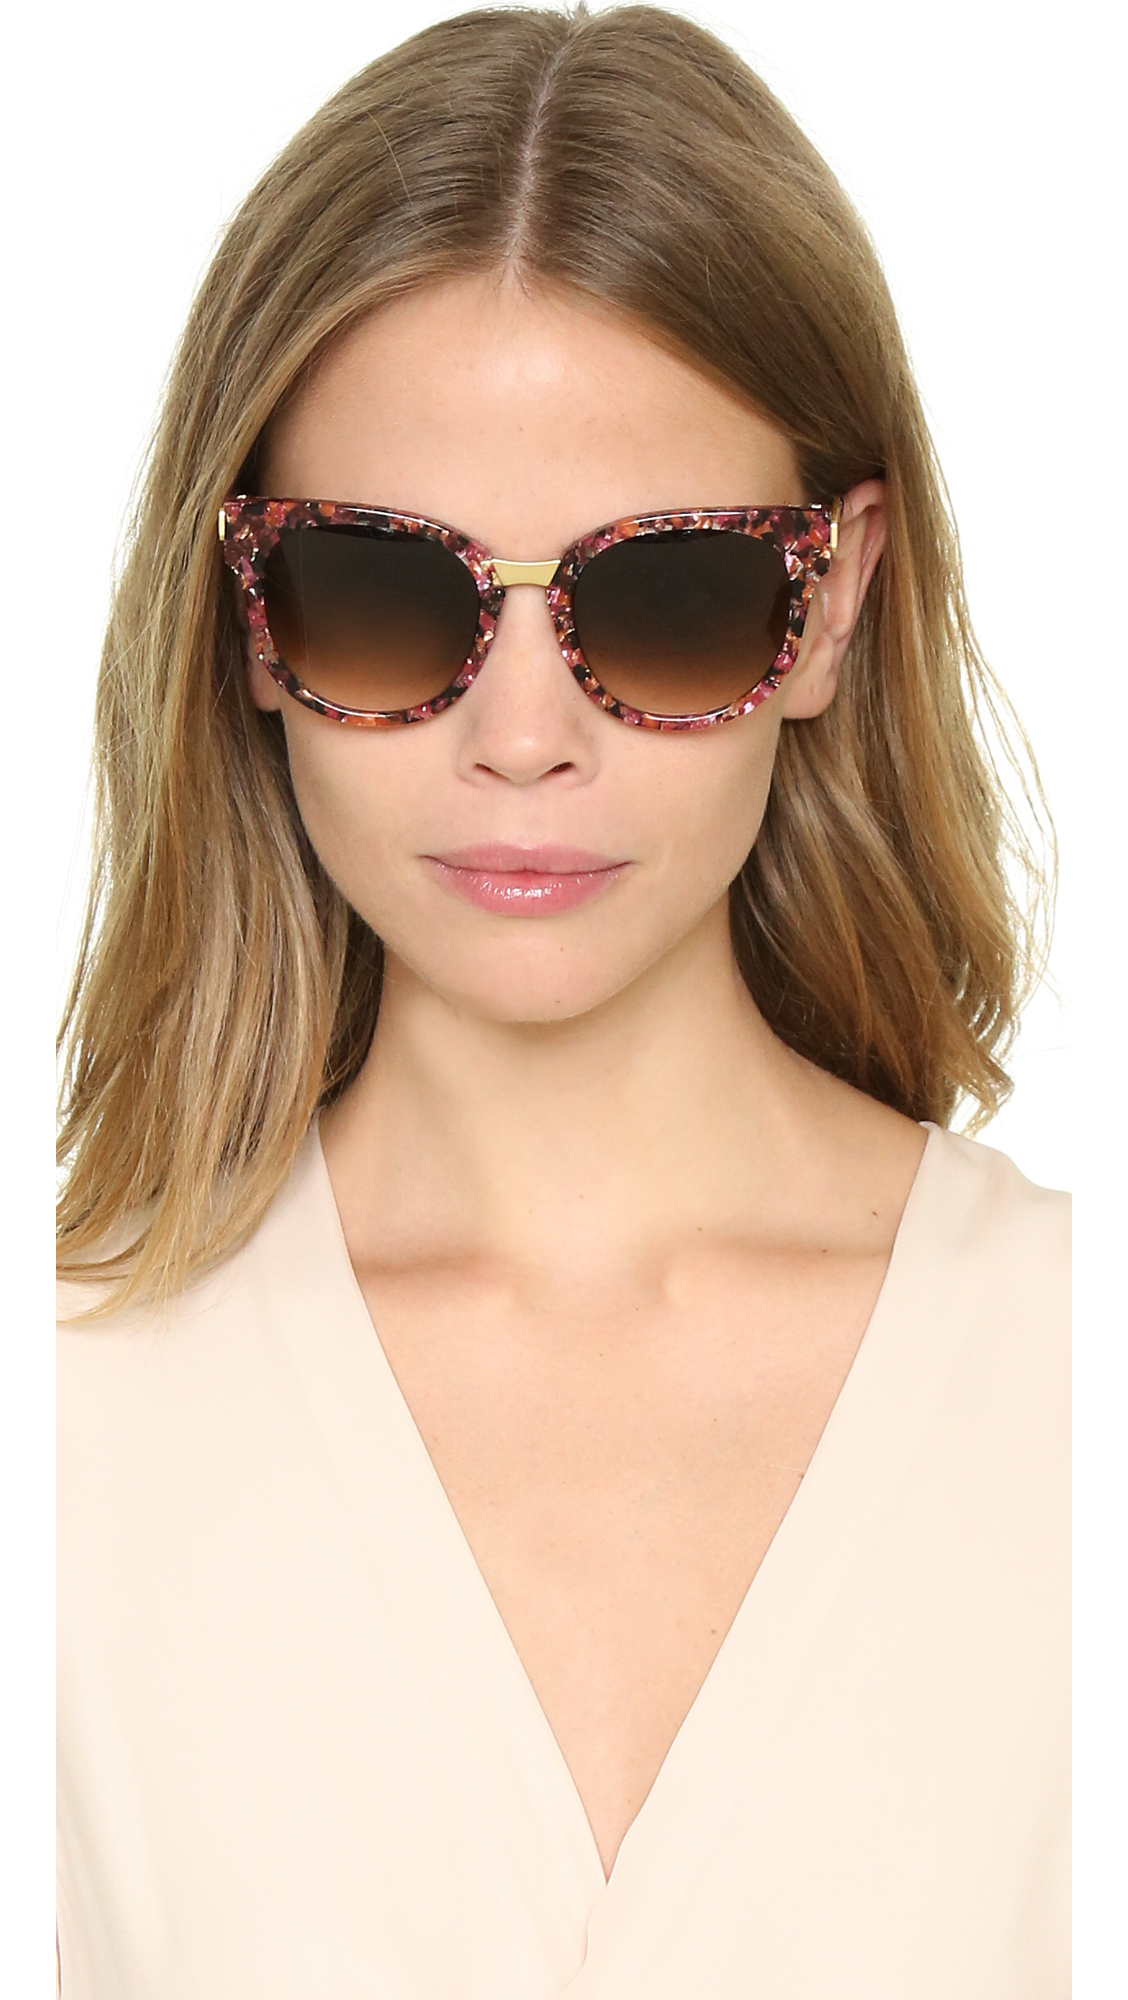 Thierry Lasry Sonnenbrille Affinity Mca2WW